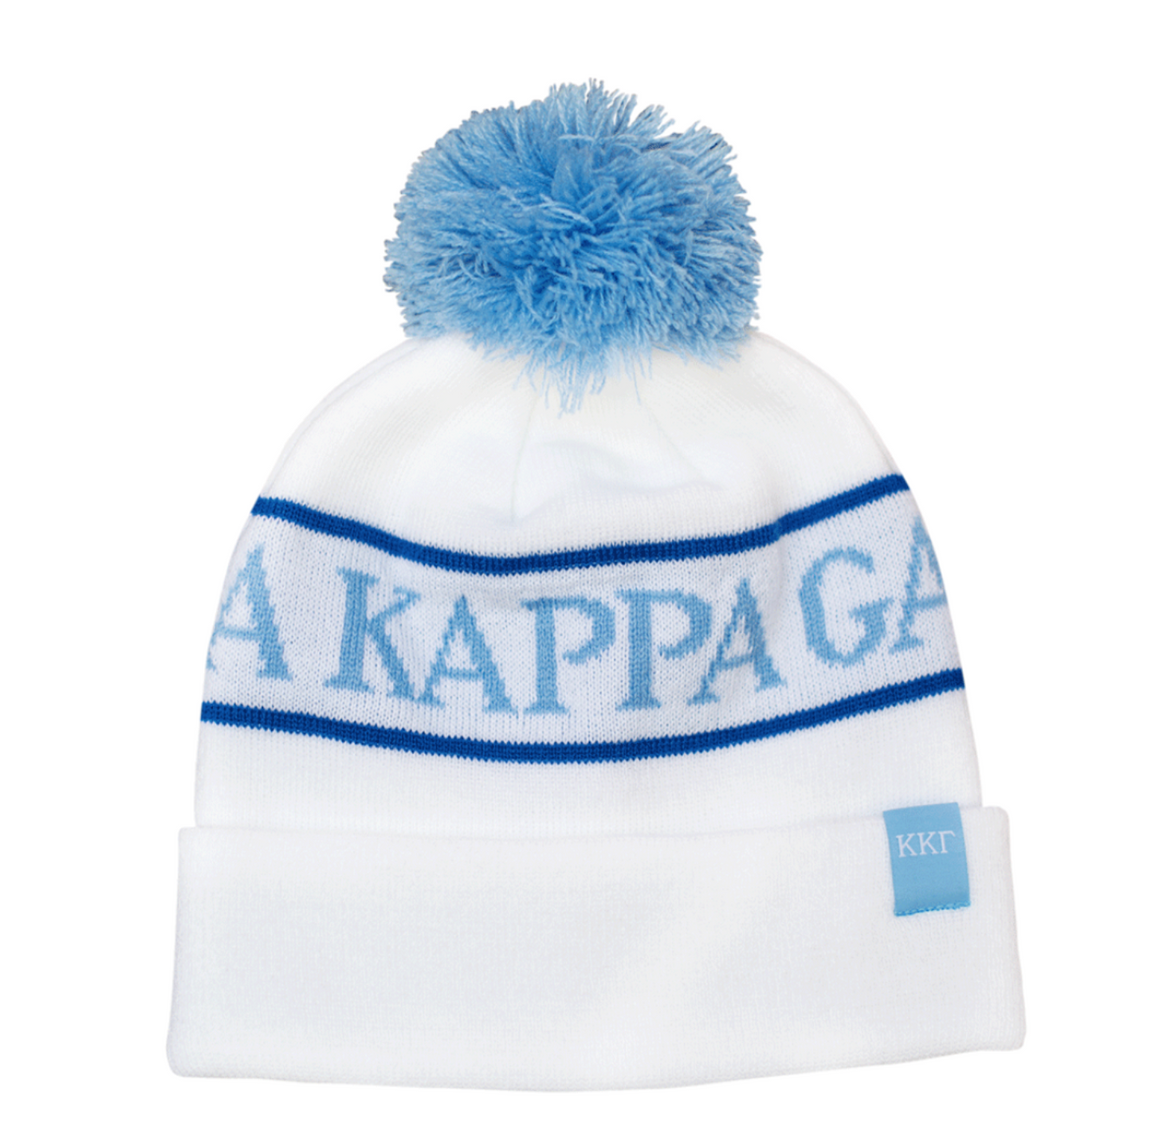 232cb3c0 Kappa Kappa Gamma - Brown Bag Etc